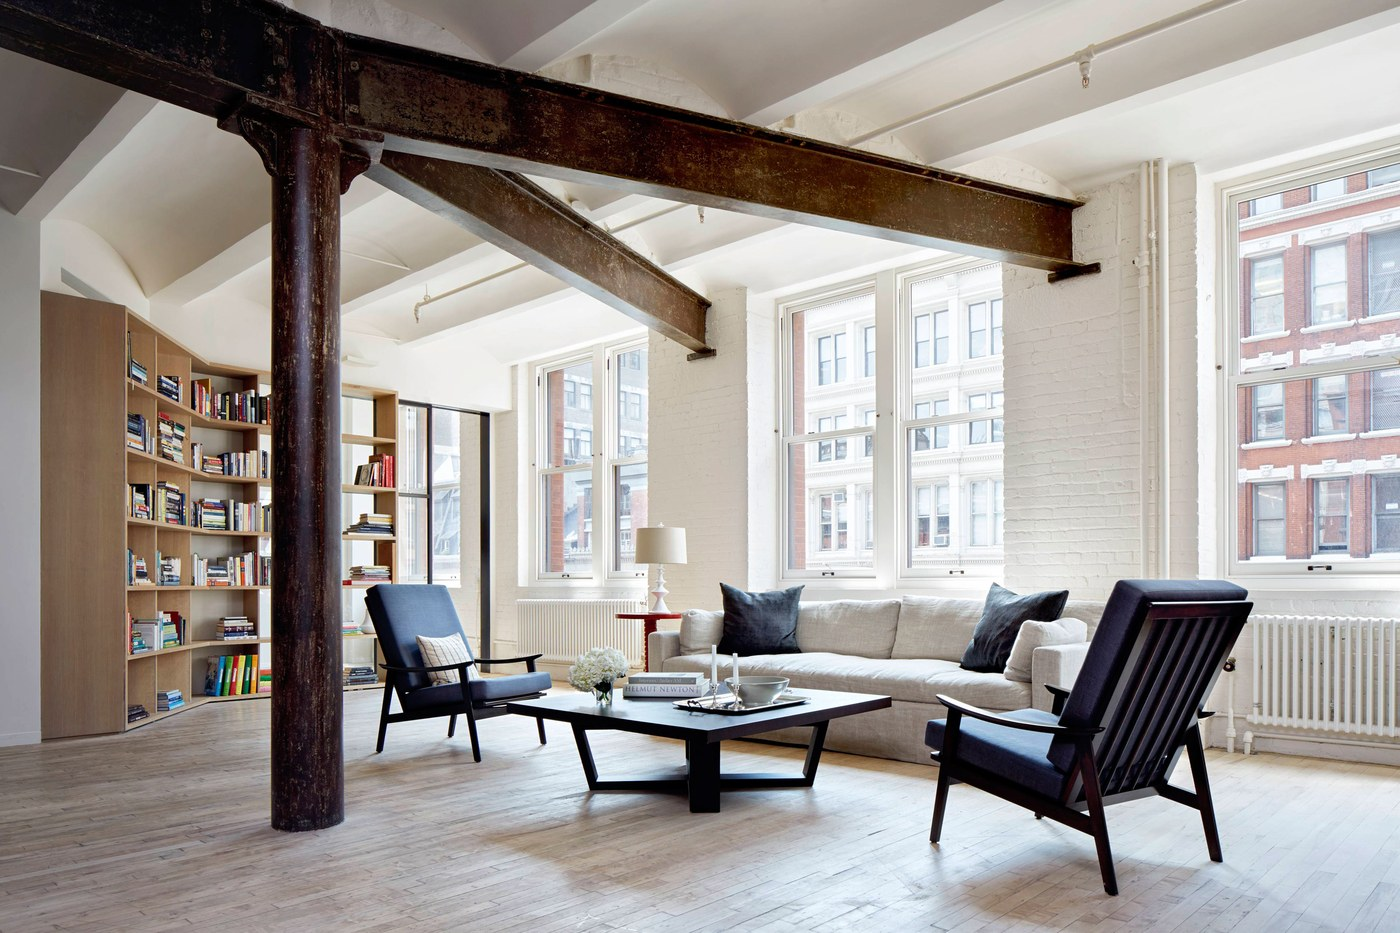 Architectural Digest: Step Inside a Historic Loft Apartment Reimagined for a Modern Family by designer Anna Beeber and architect Drew Lang